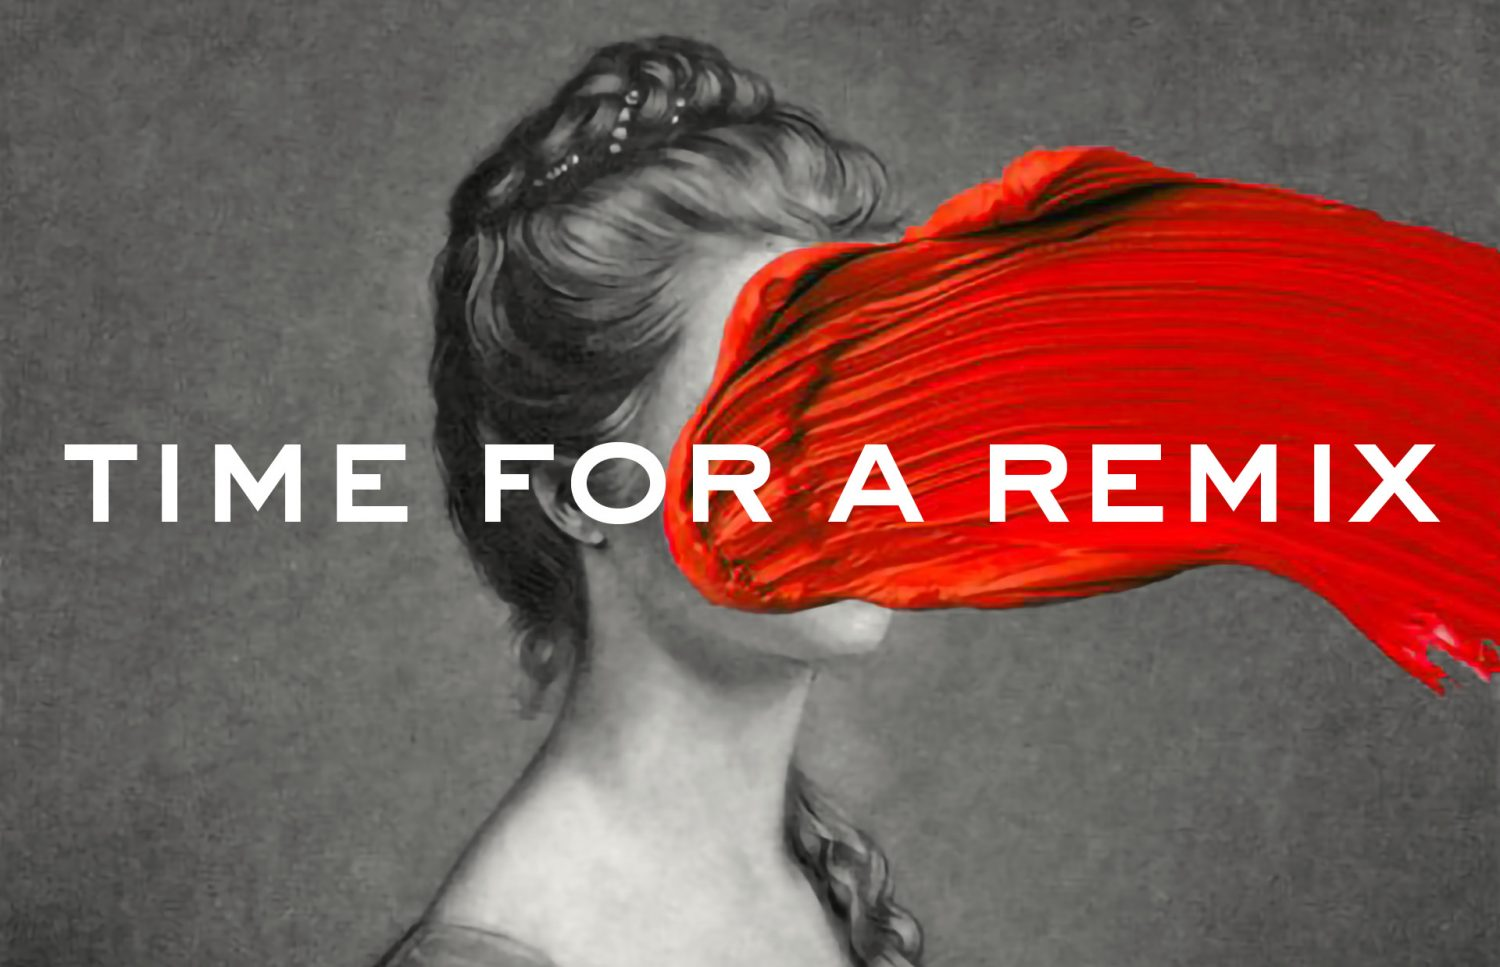 time for a remix, branding work, revitalizing, old meets new, vancouver, abbotsford, granville island, partners & hawes, brand strategy, visual language, community management, social media, creative